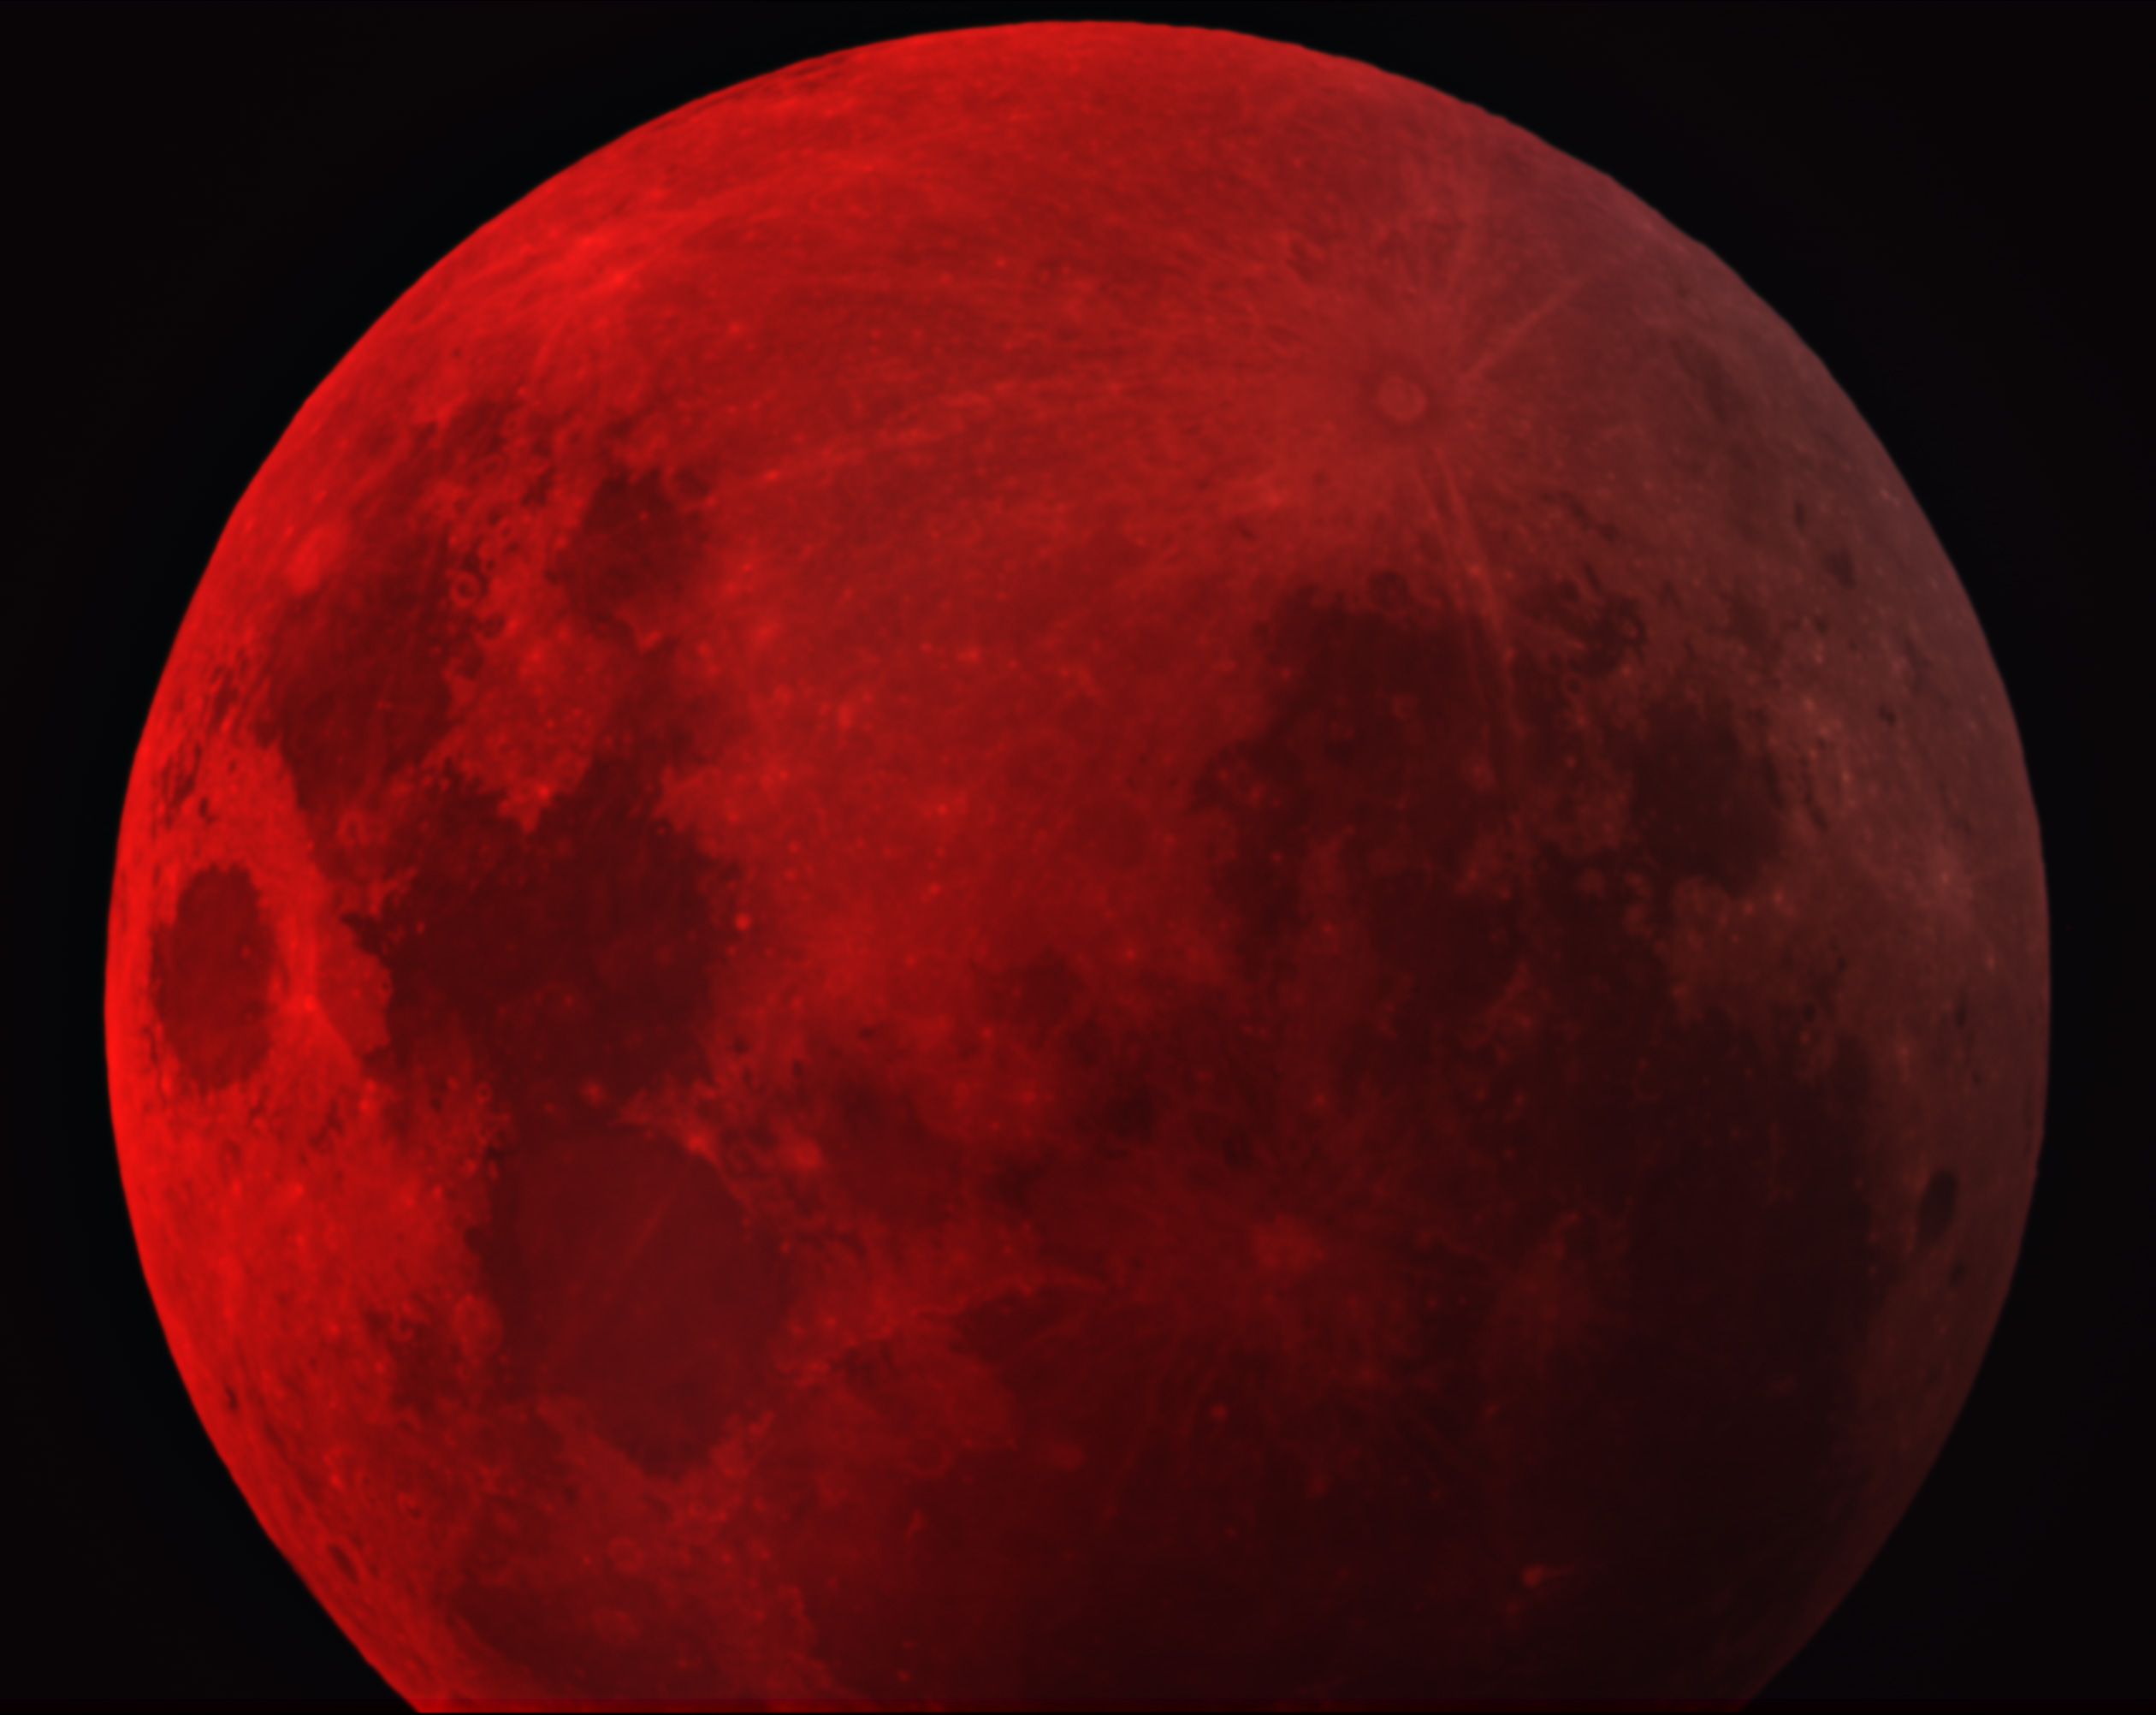 red moon and eclipse - photo #18